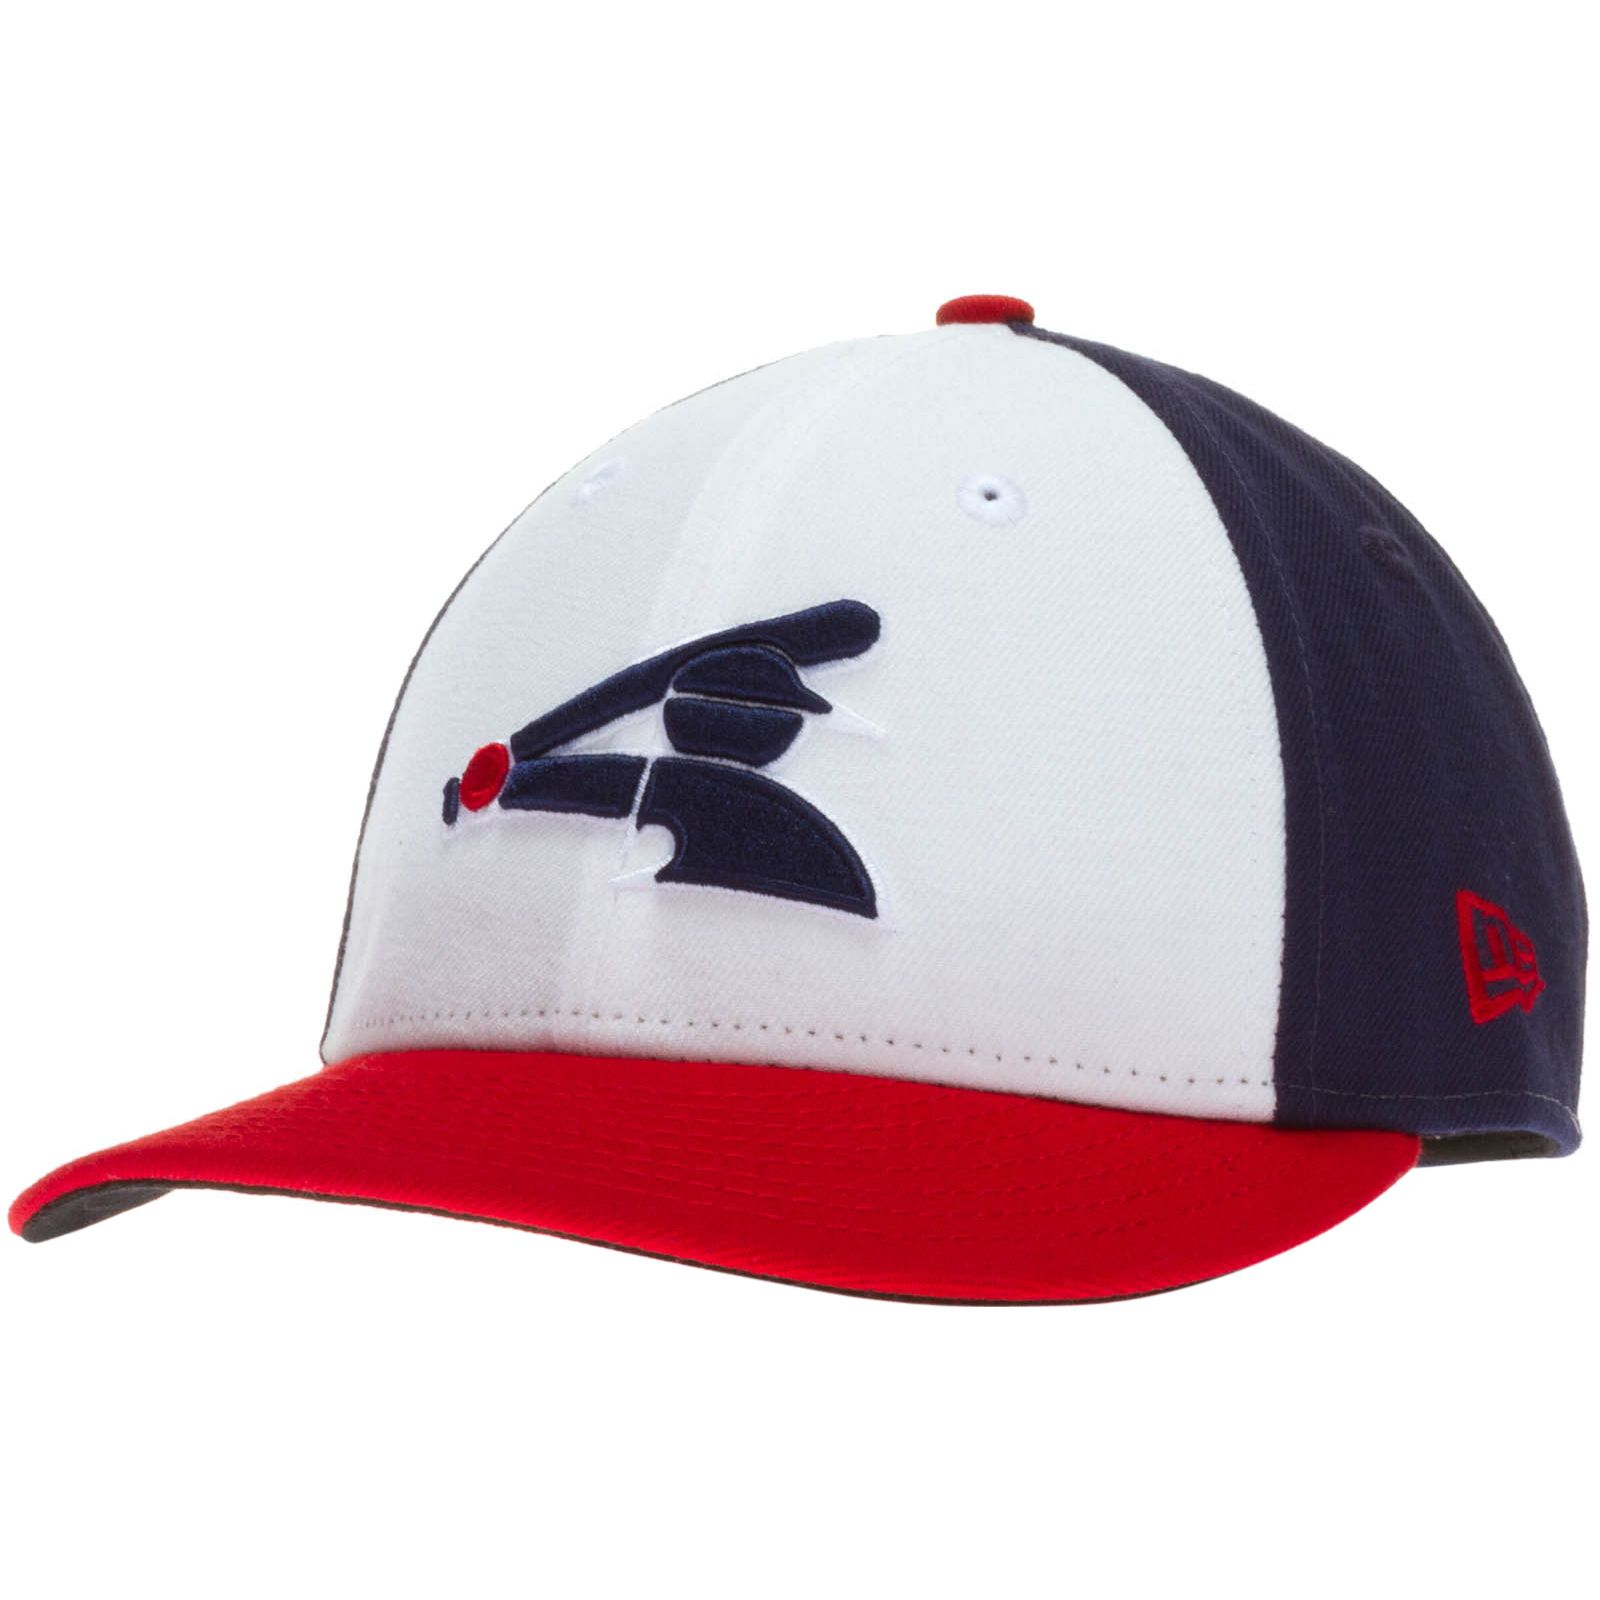 7ce39eebf7d5a Chicago White Sox Tri-Color Half Batterman Flat Bill Fitted Hat by New Era   Chicago  ChicagoWhiteSox  WhiteSox